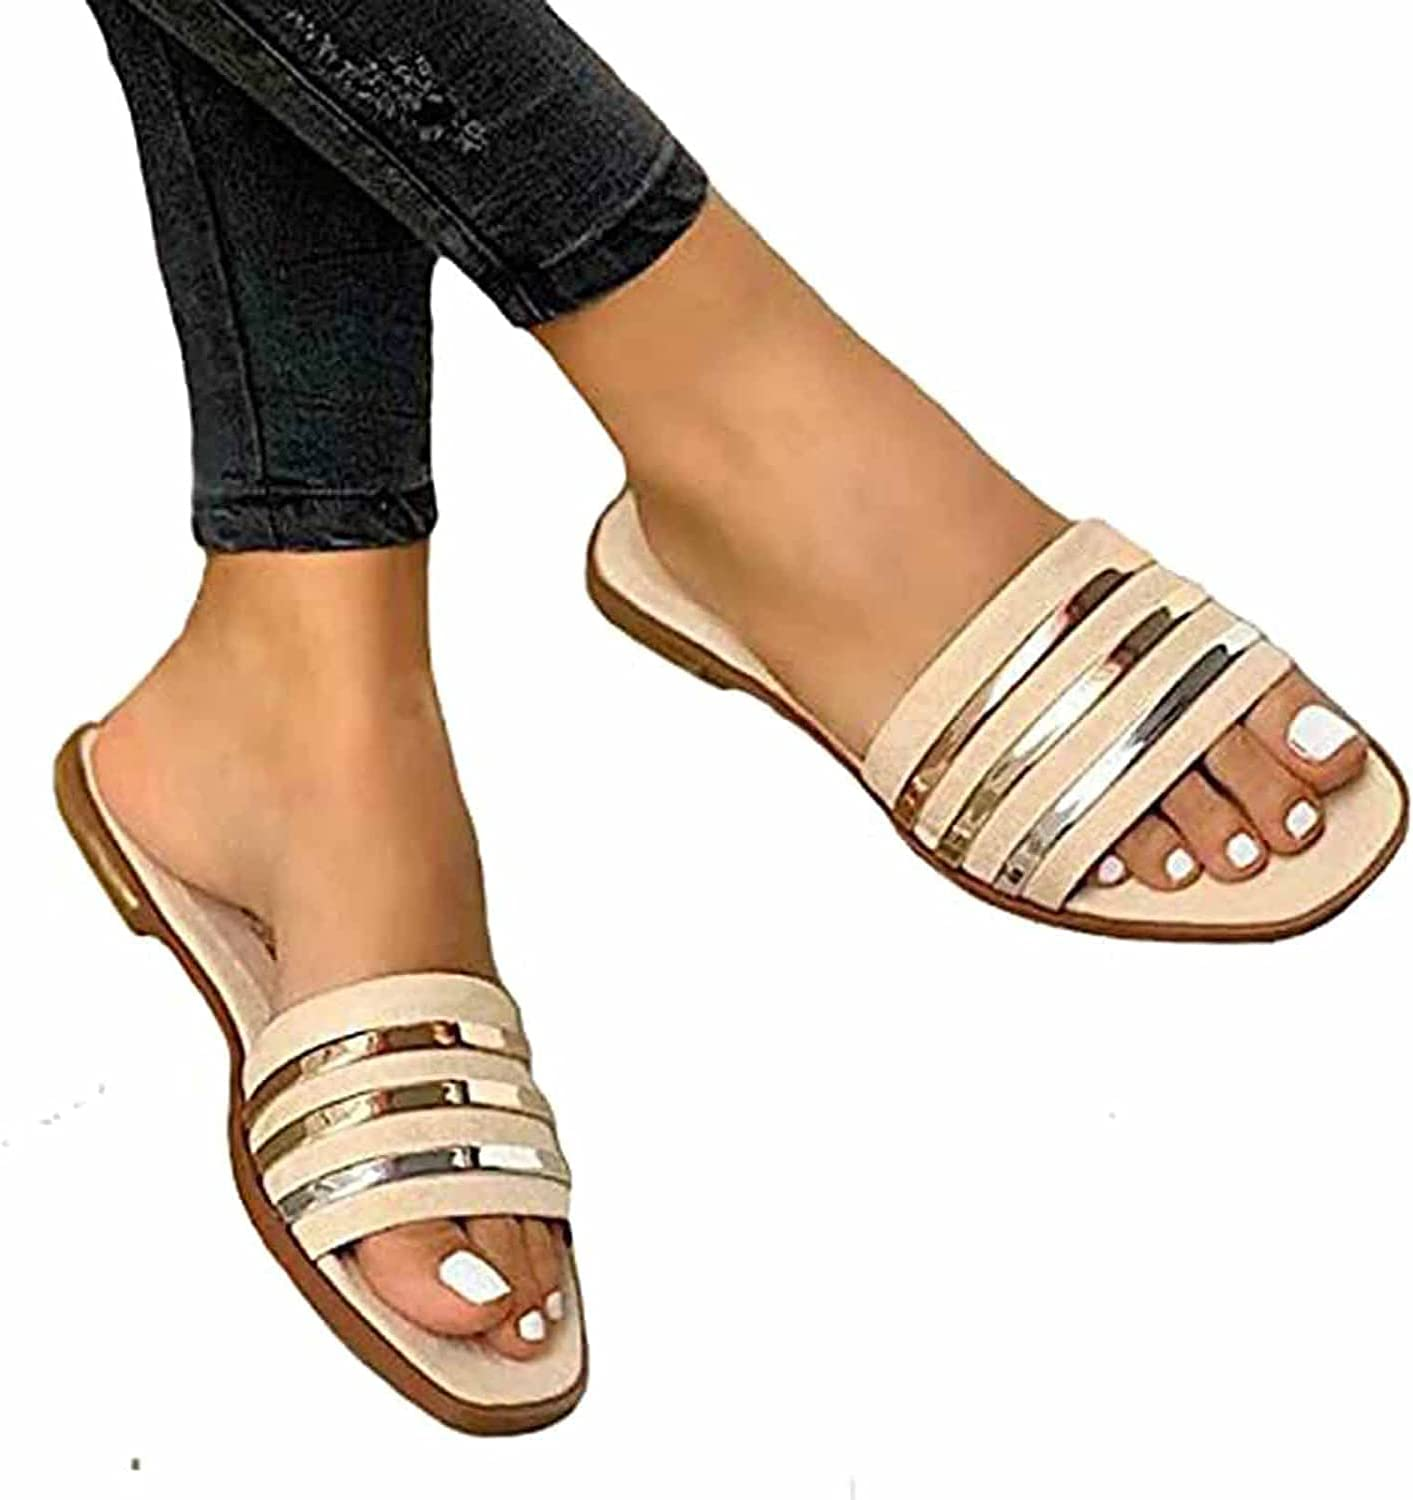 Womens Flat Sandals, Summer Ladies Flat Sliders Leather Open Toe Beach Clip Non-Slip Sandals Comfort Casual Indoor Outdoor Shoes Holiday Slippers (Color : Beige, Size : 39)